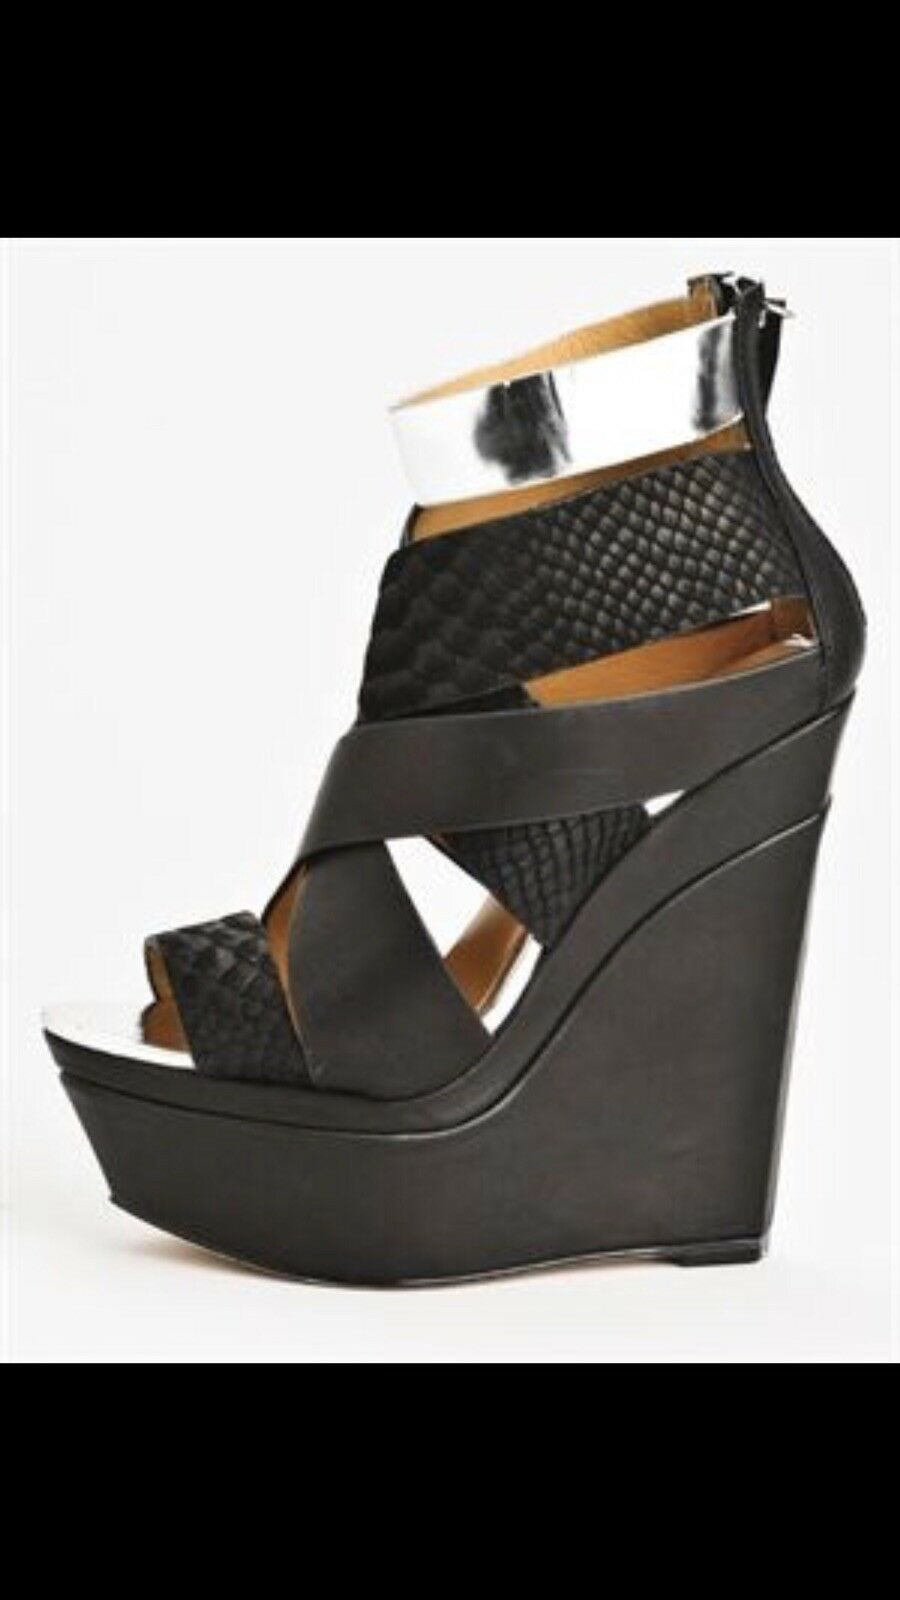 L.A.M.B. Gwen Stefani Dove Strappy Wedge Sandals Taille 7.5